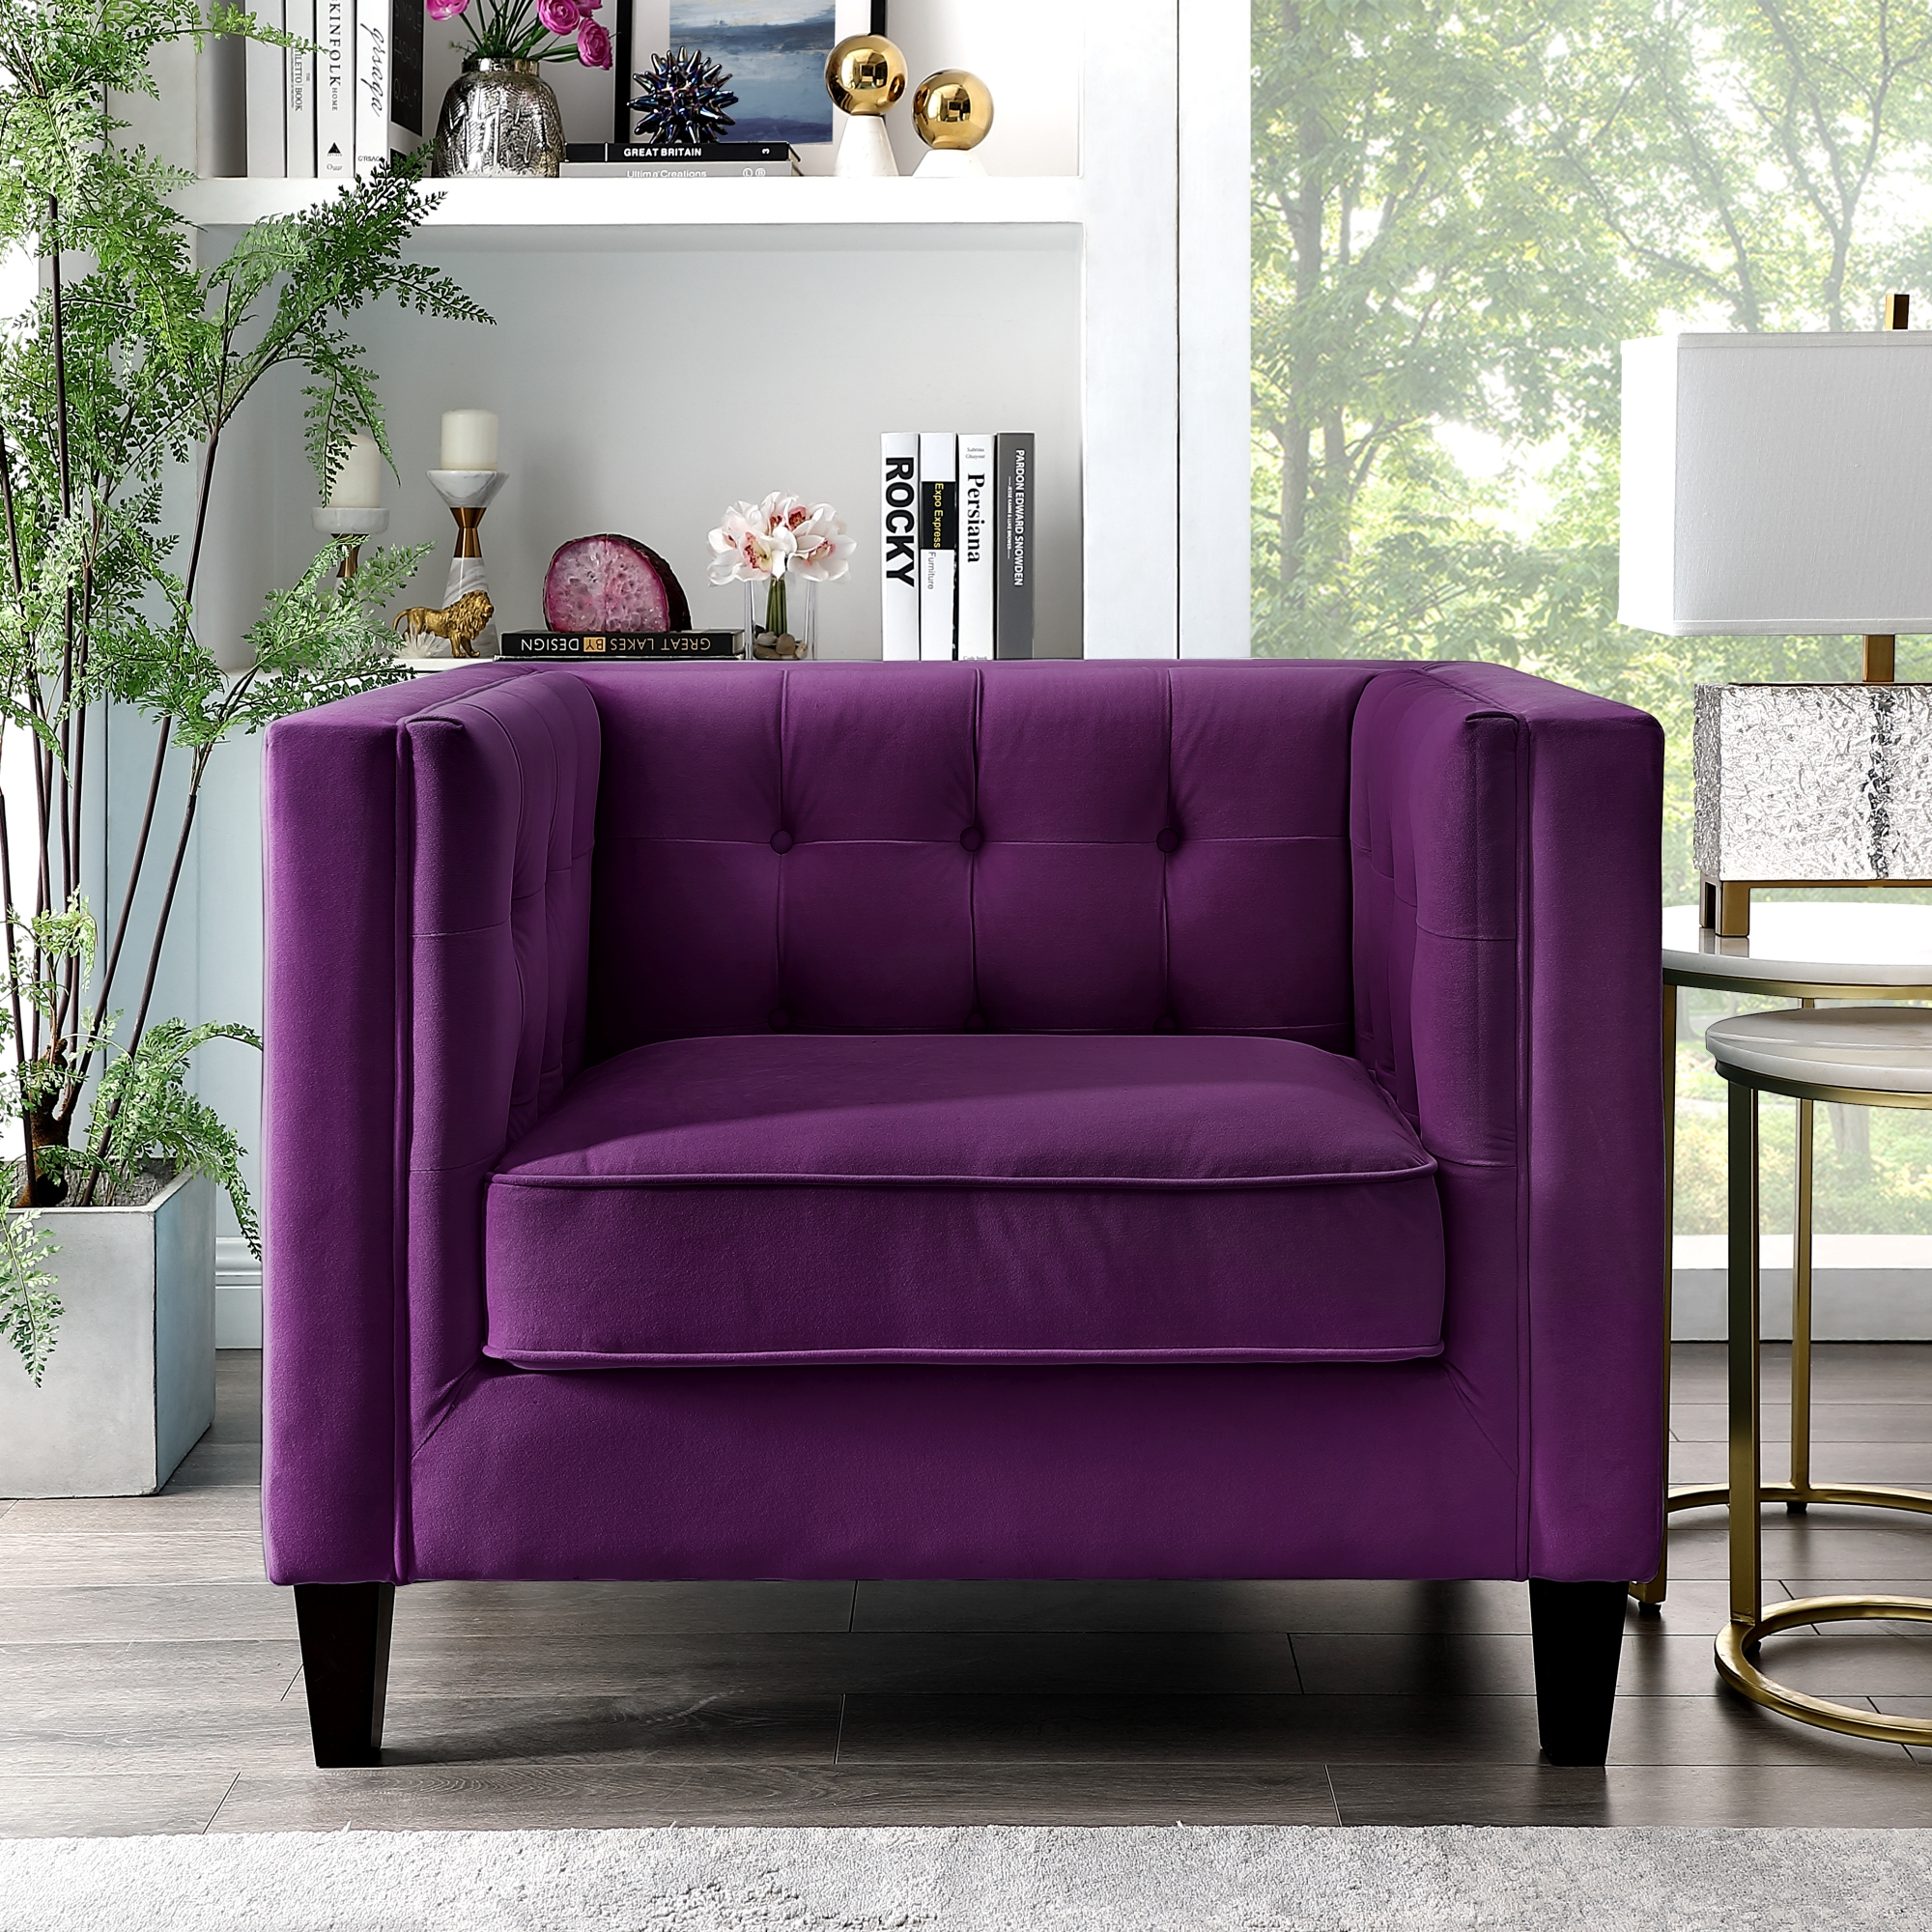 Inspired Home Rin Velvet Club Chair Or Sofa Tufted Square Arms Tapered Legs Modern Purple Walmart Com Walmart Com